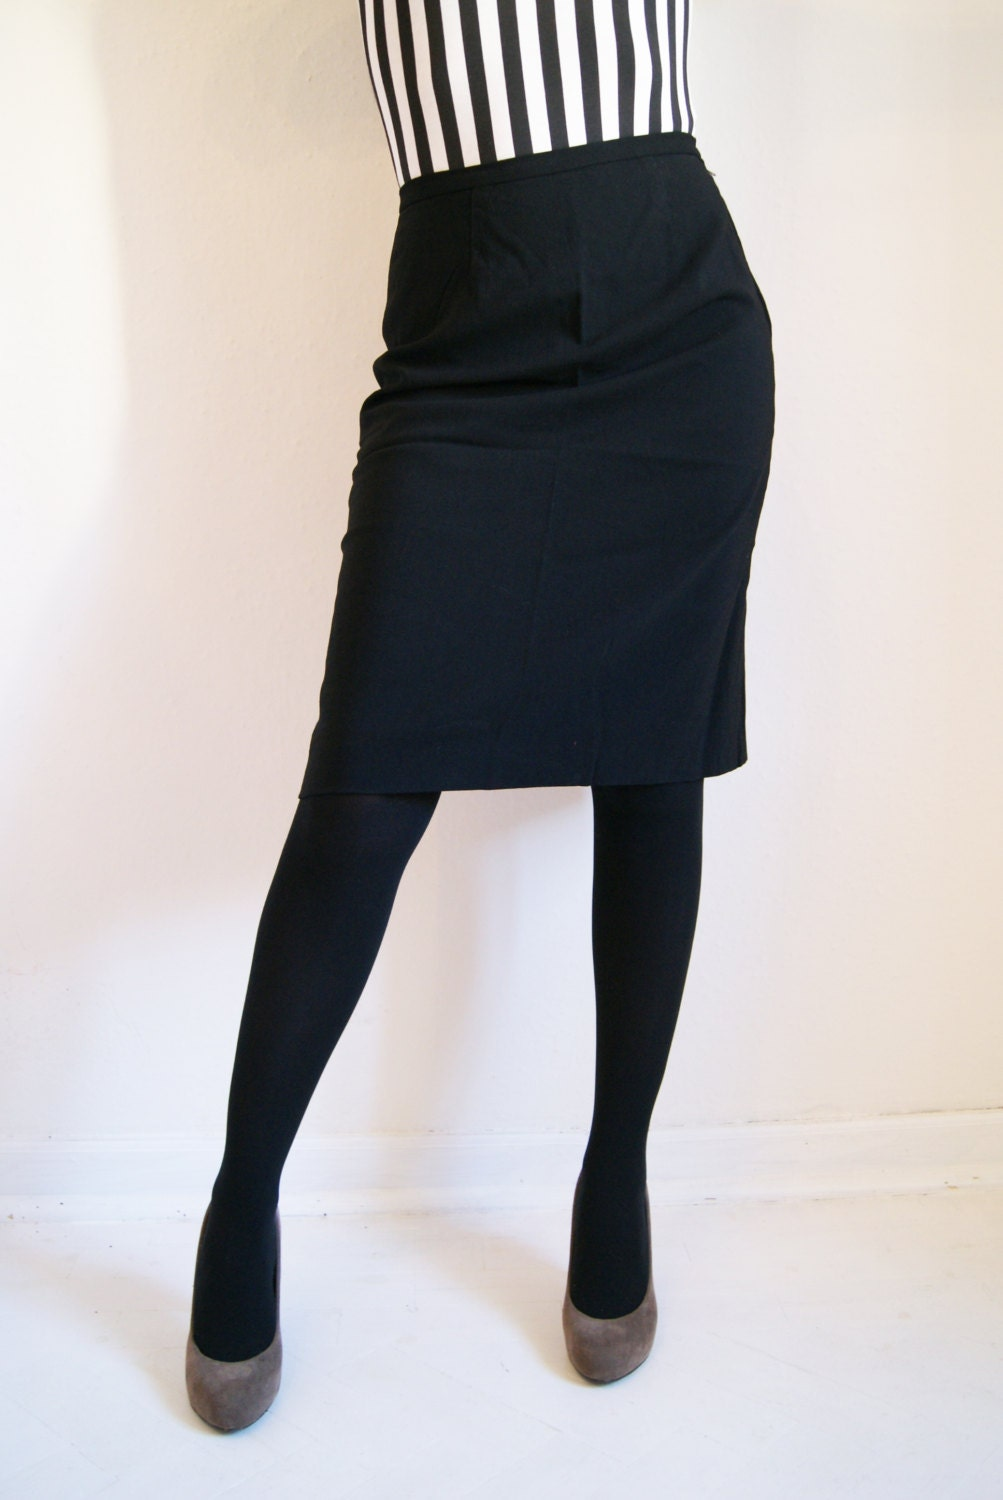 items similar to 70s above knee black pencil skirt on etsy